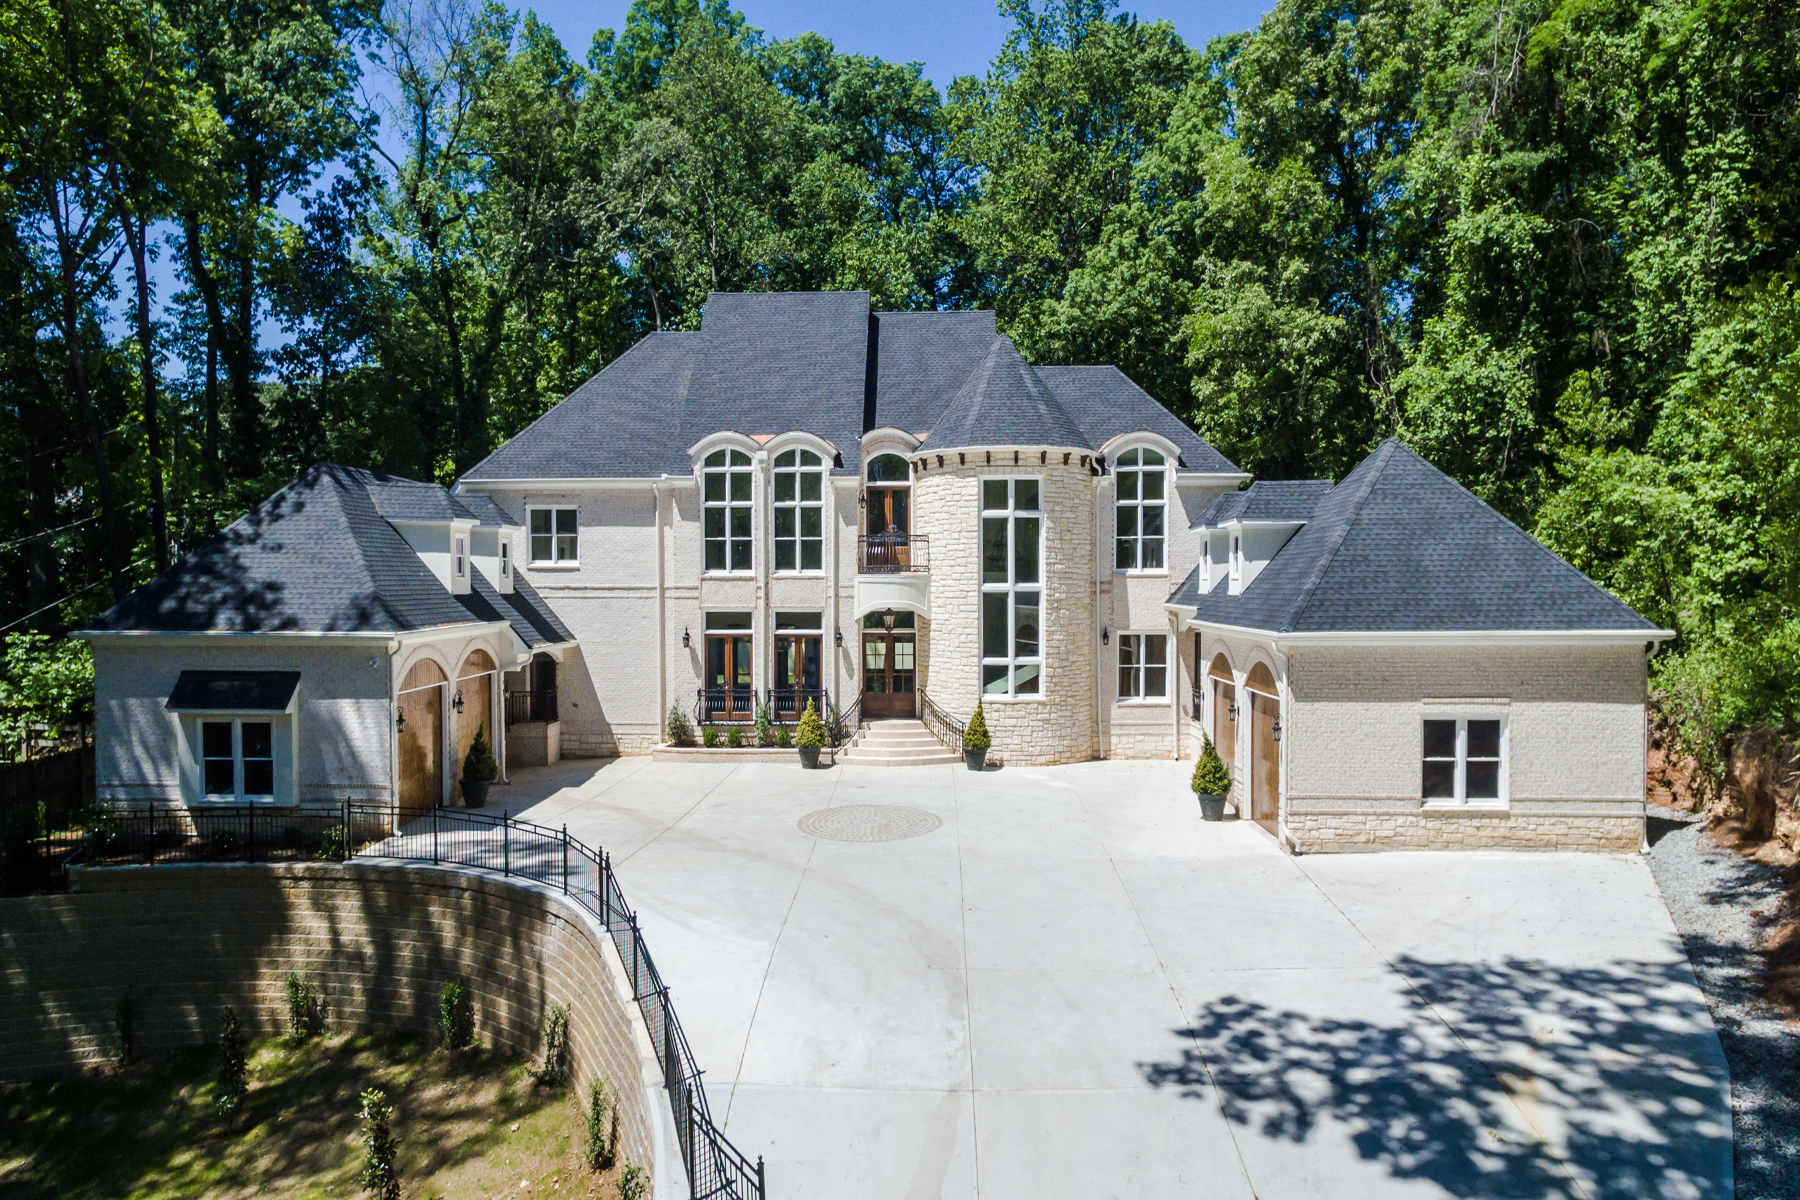 Single Family Home for Sale at Hilltop European On 1.6 Acre Lot 3620 Cloudland Drive Buckhead, Atlanta, Georgia, 30327 United States